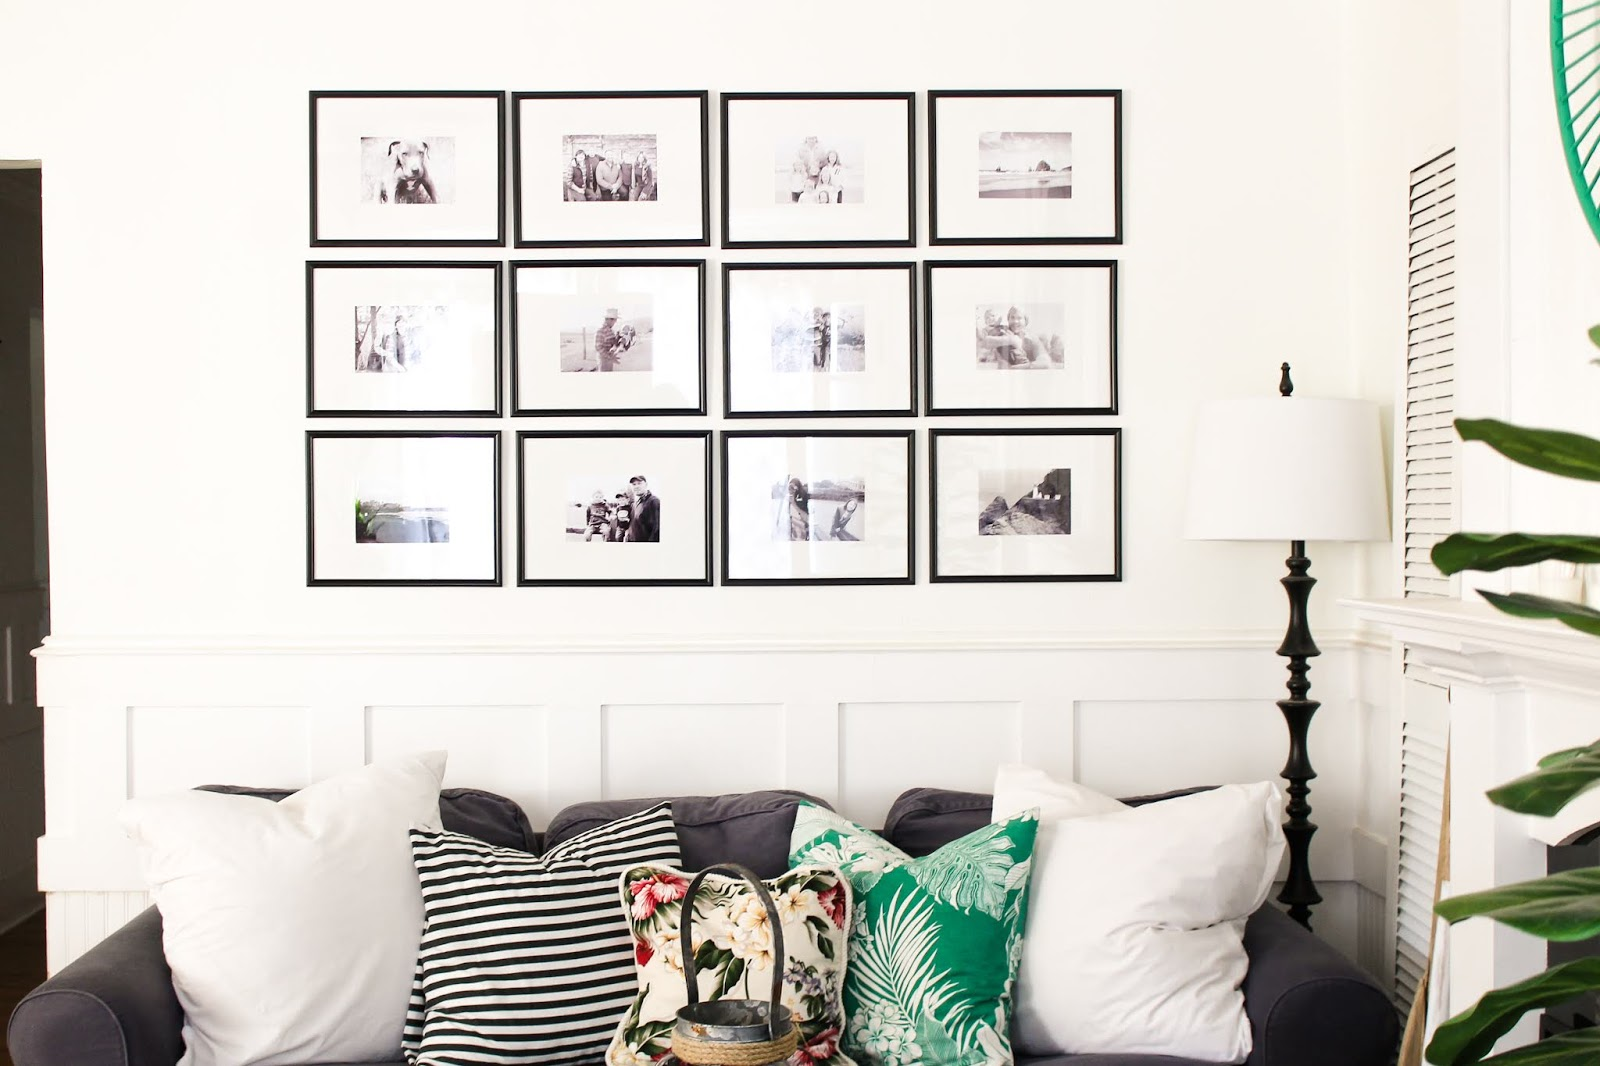 Picture Gallery Wall Using Dollar Store Frames - The Wicker House